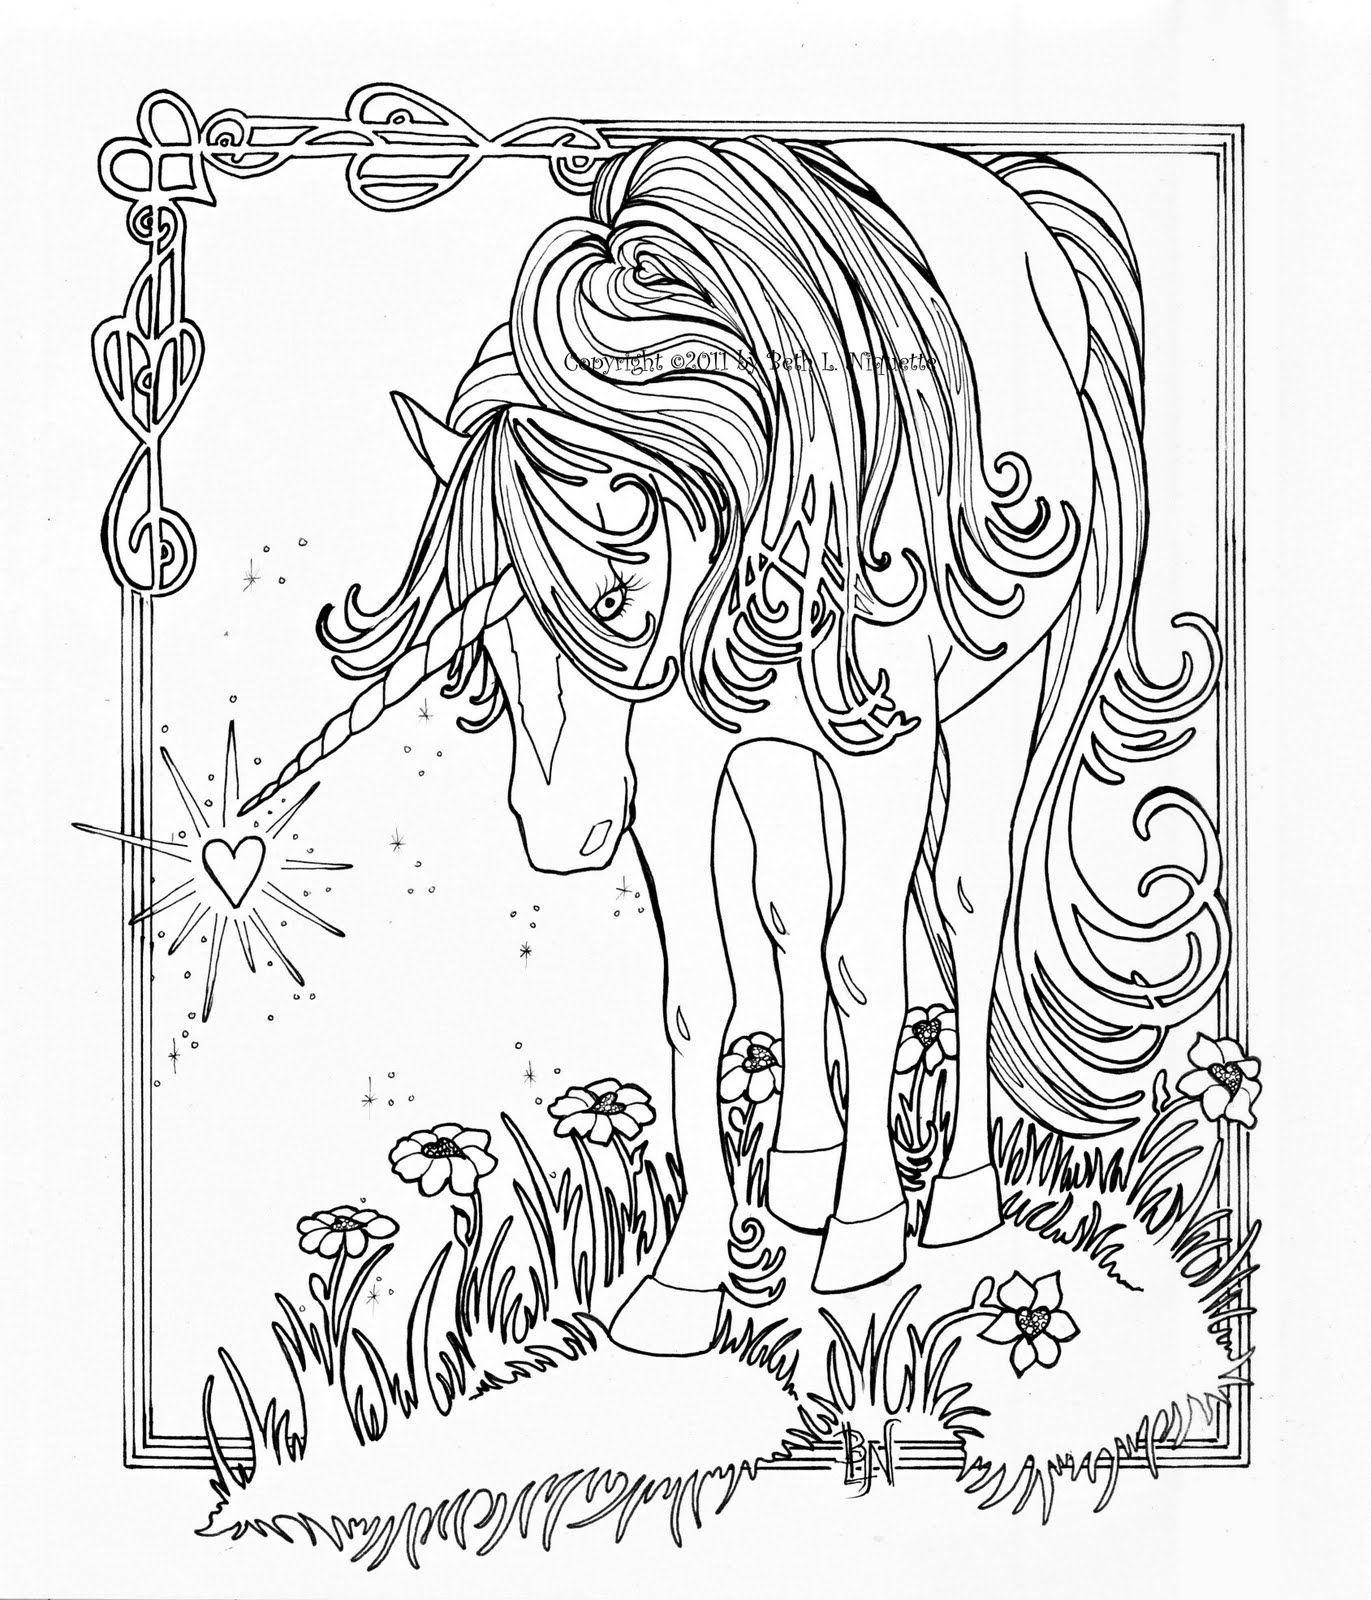 Free printable coloring pages unicorns - Unicorn Coloring Pages For Adults Unicorn With Wings Coloring Pages